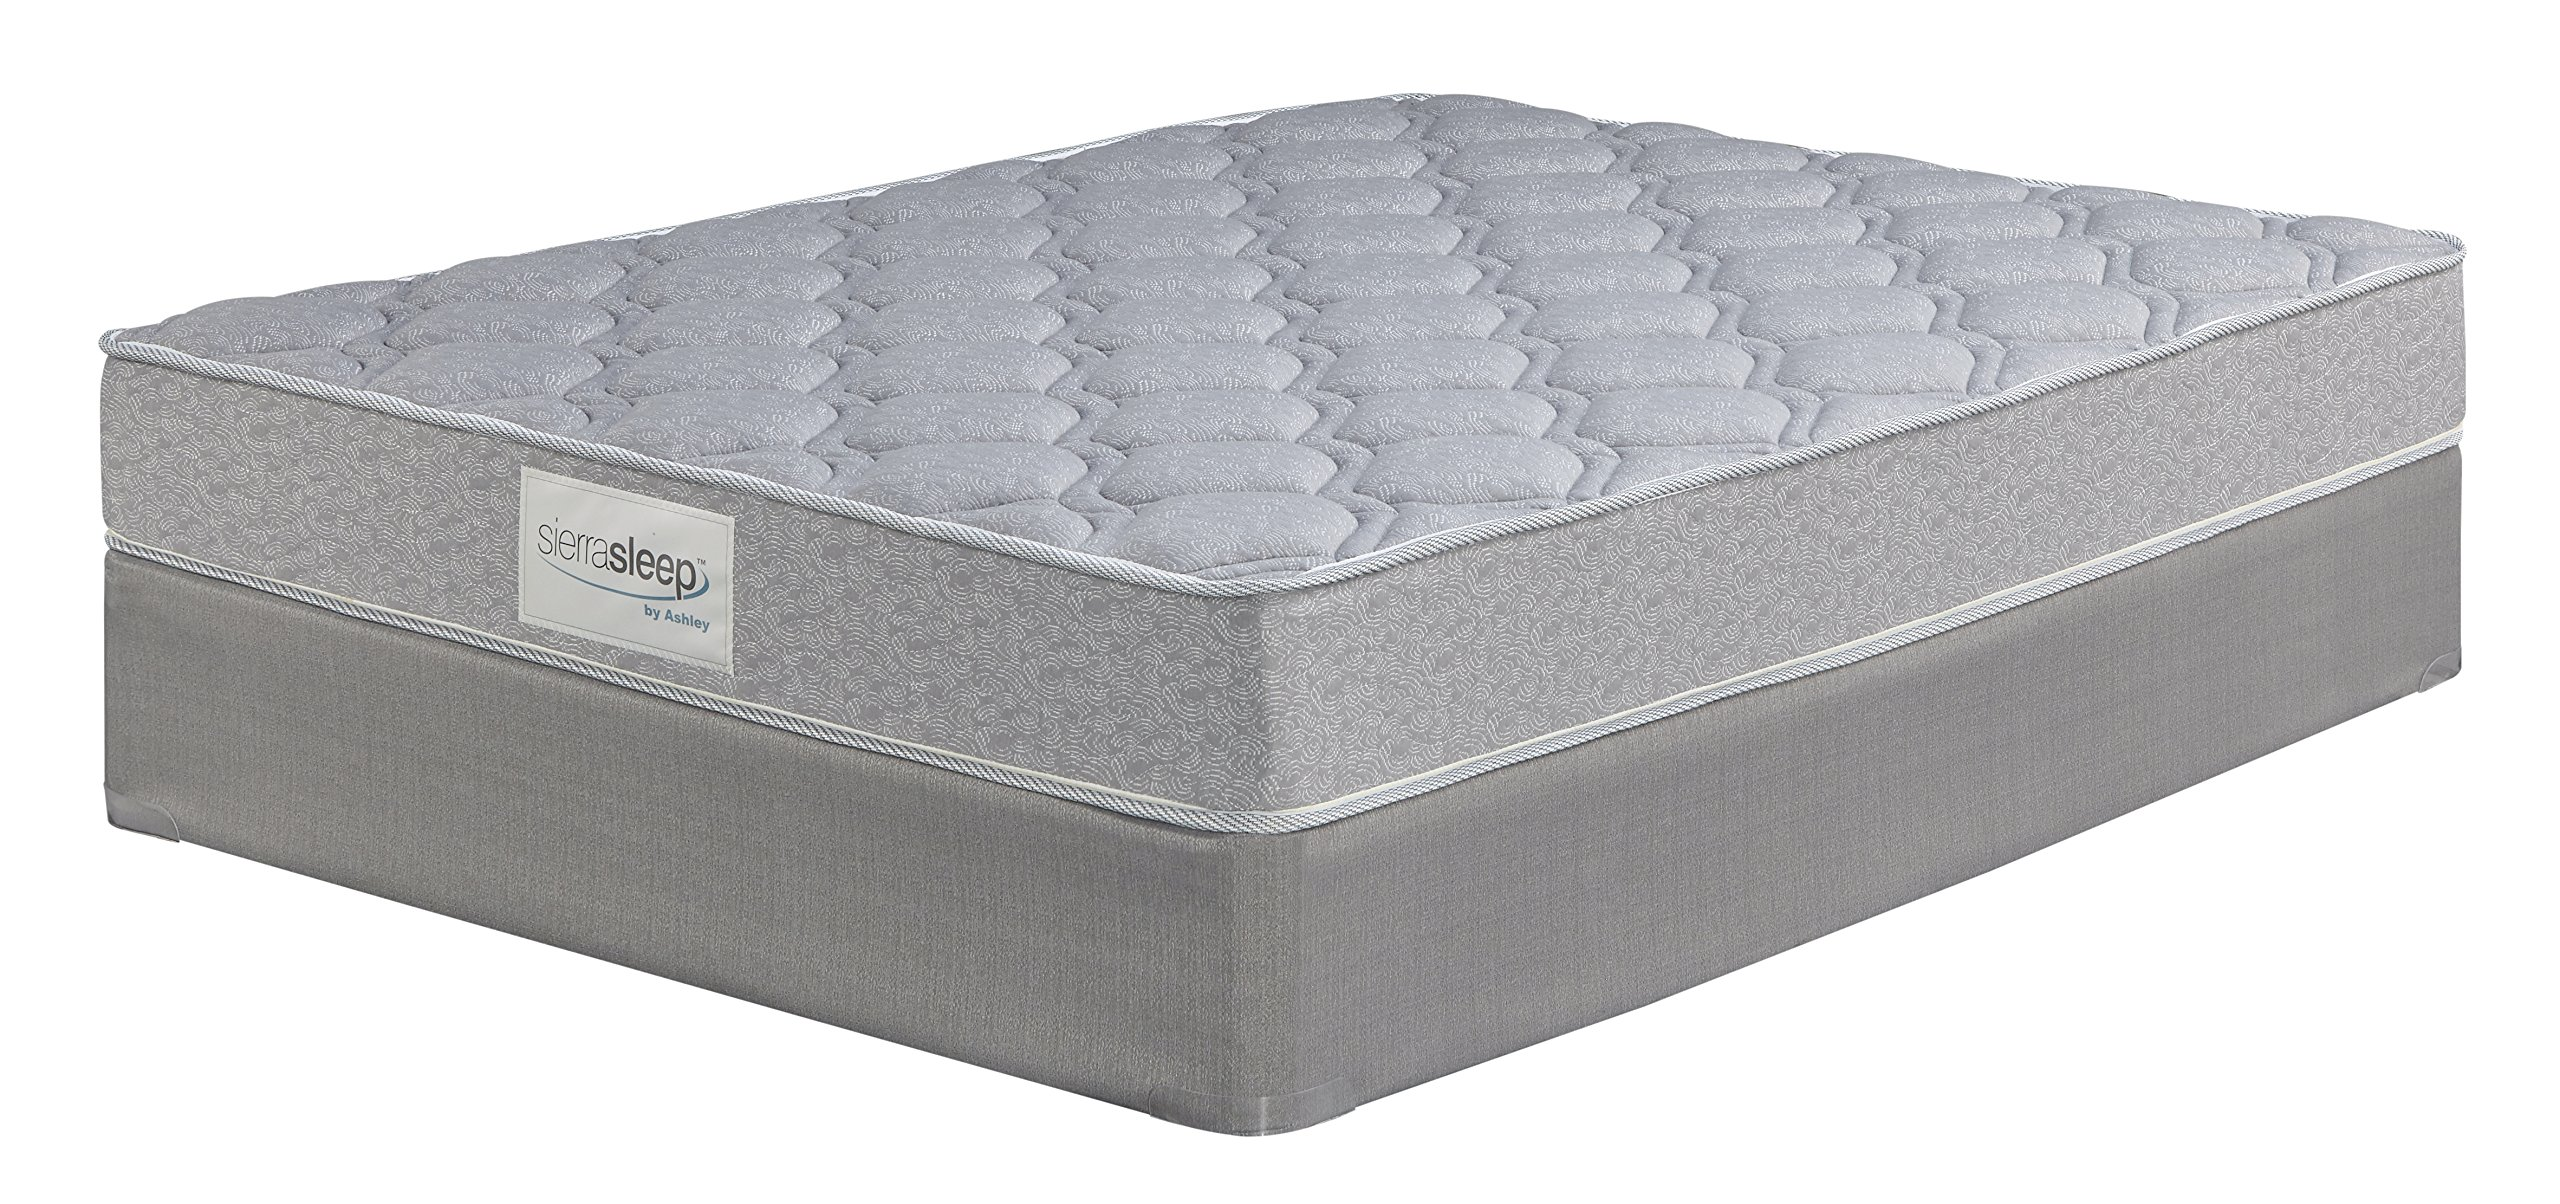 Ashley Furniture Signature Design - Sierra Sleep - Silver Ltd. Firm Tight Top Mattress - Traditional Queen Size Mattress - White